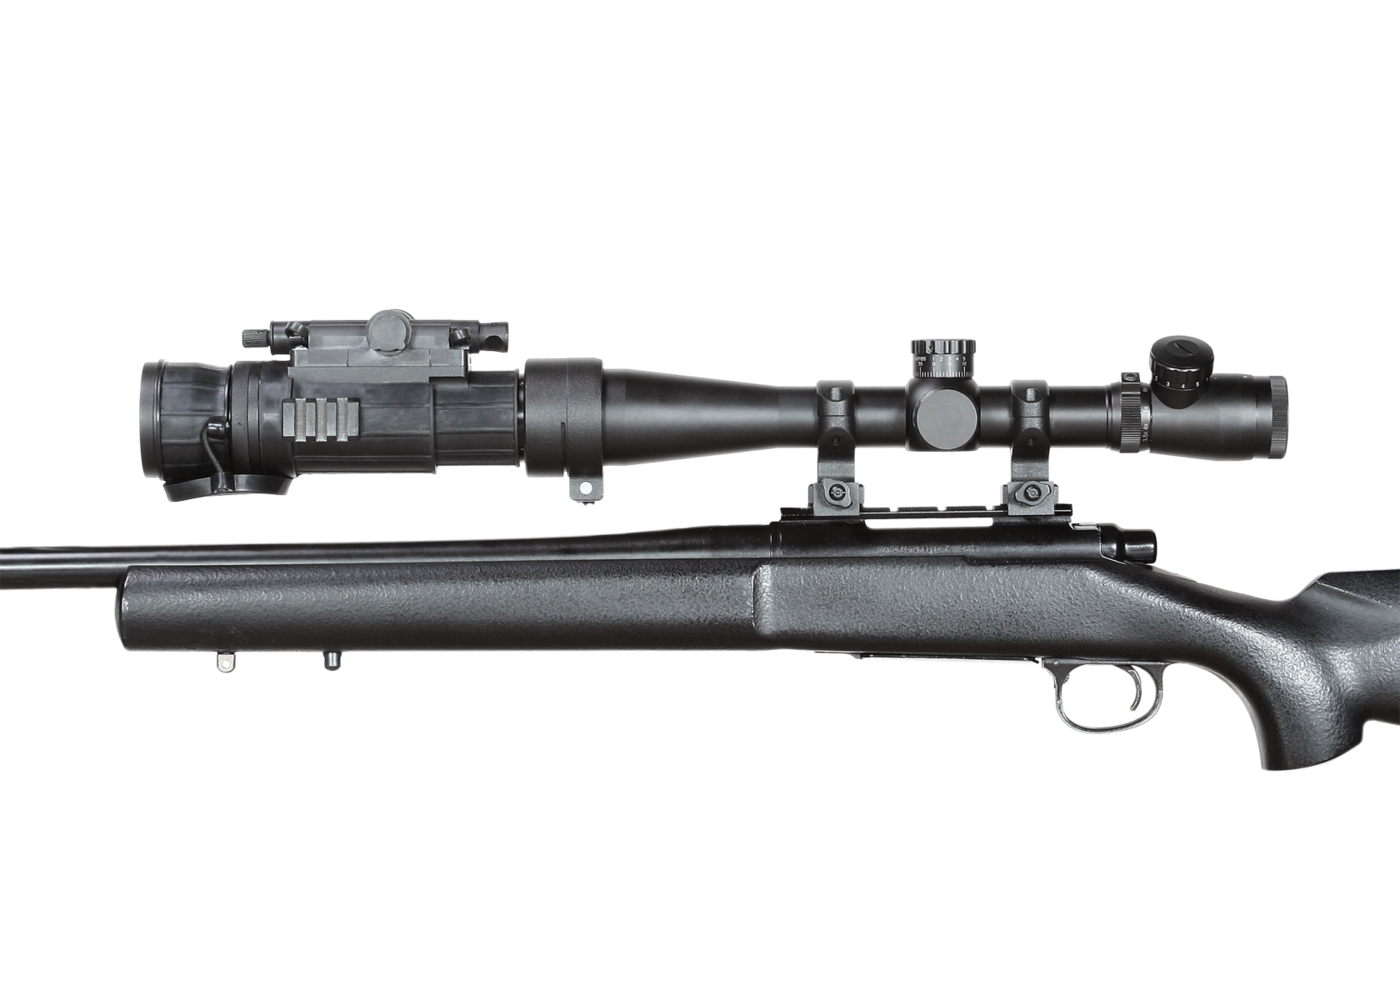 Weapon clip thermal rifle scope. Day night vision on